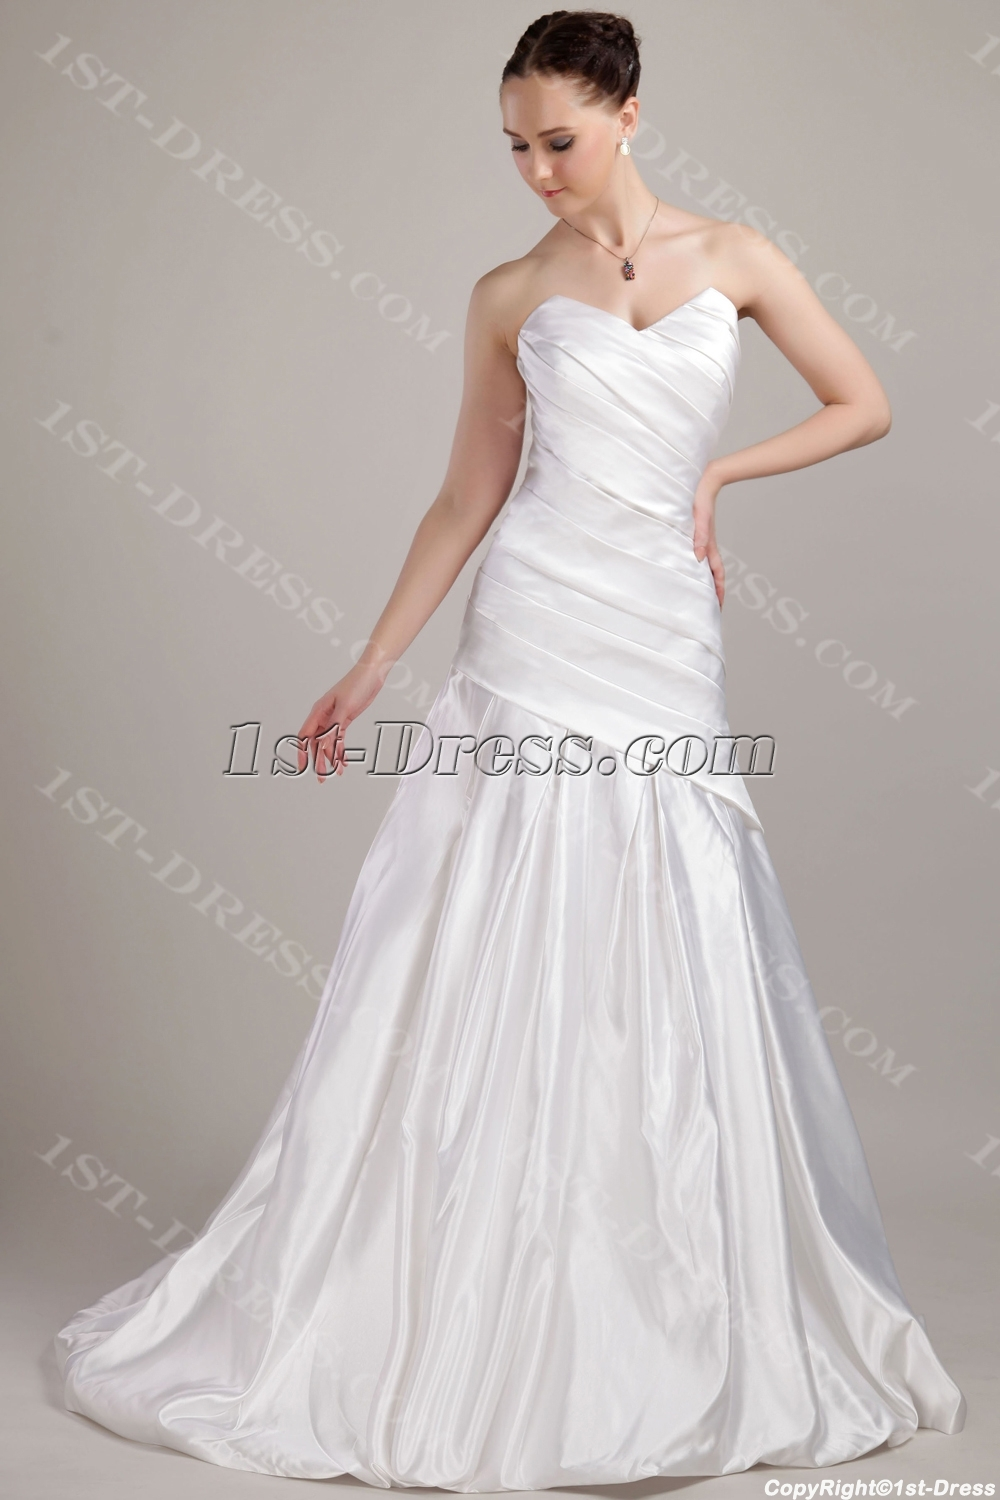 images/201304/big/Simple-Long-Mature-Bridal-Gowns-with-Train-IMG_3095-1080-b-1-1366274304.jpg